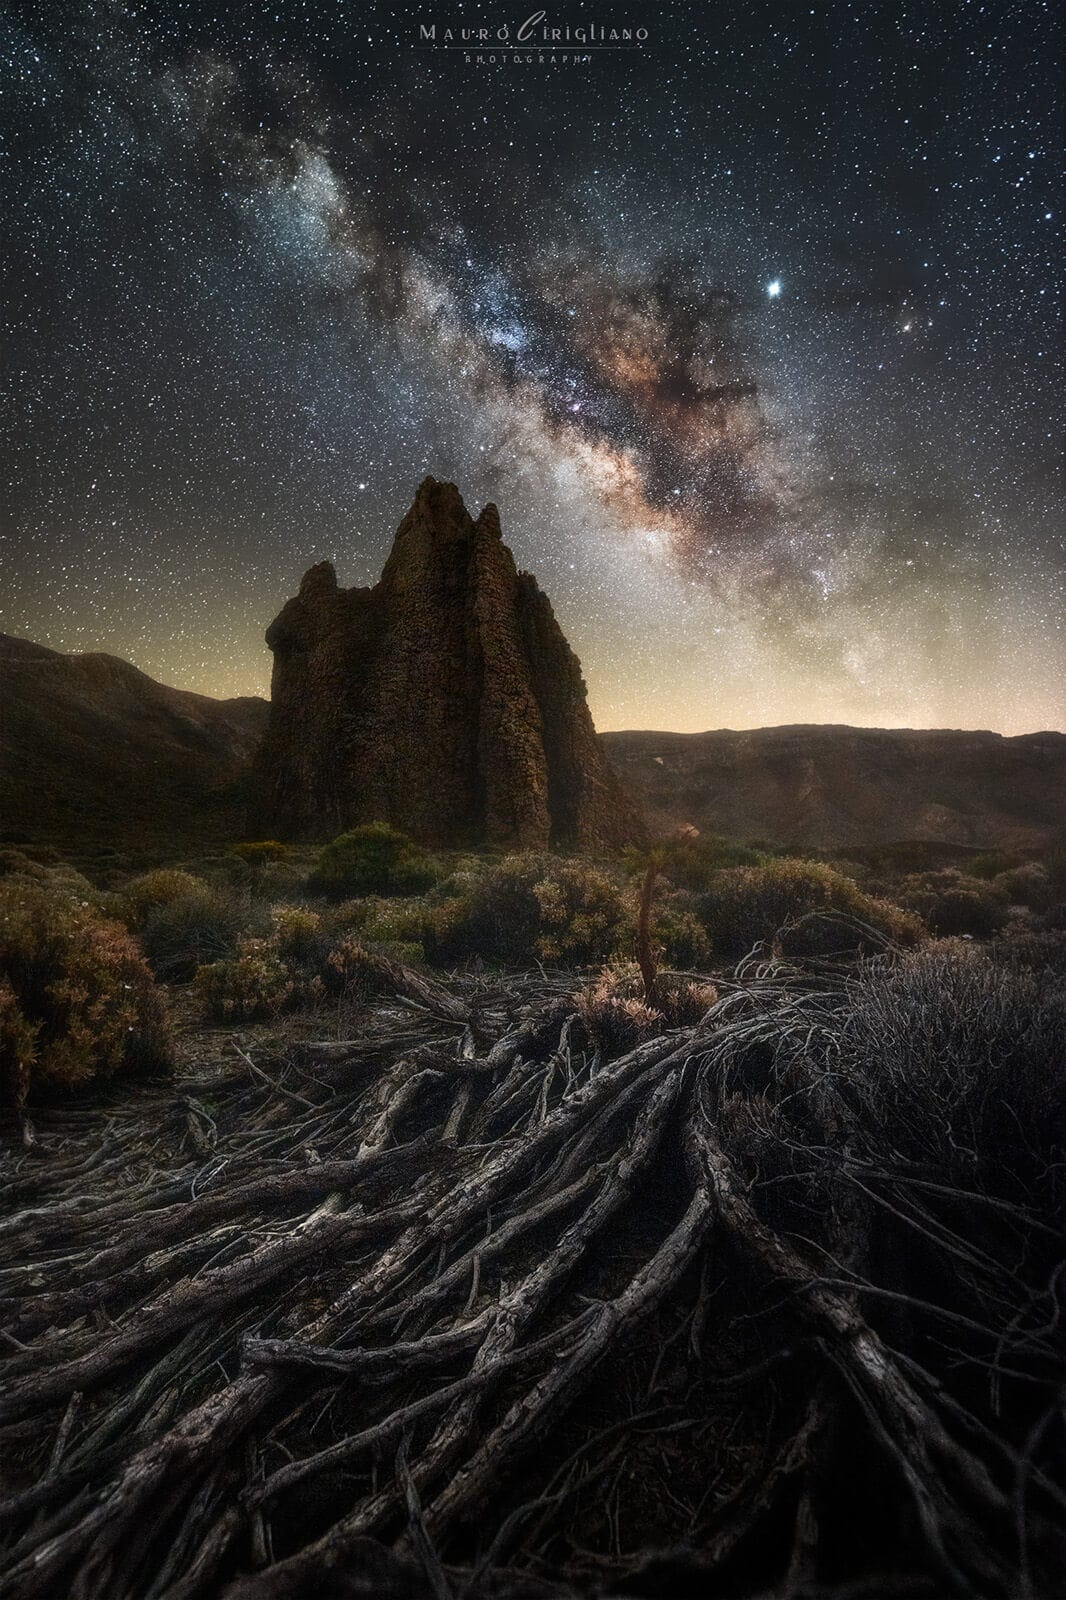 Cathedral tenerife milkyway